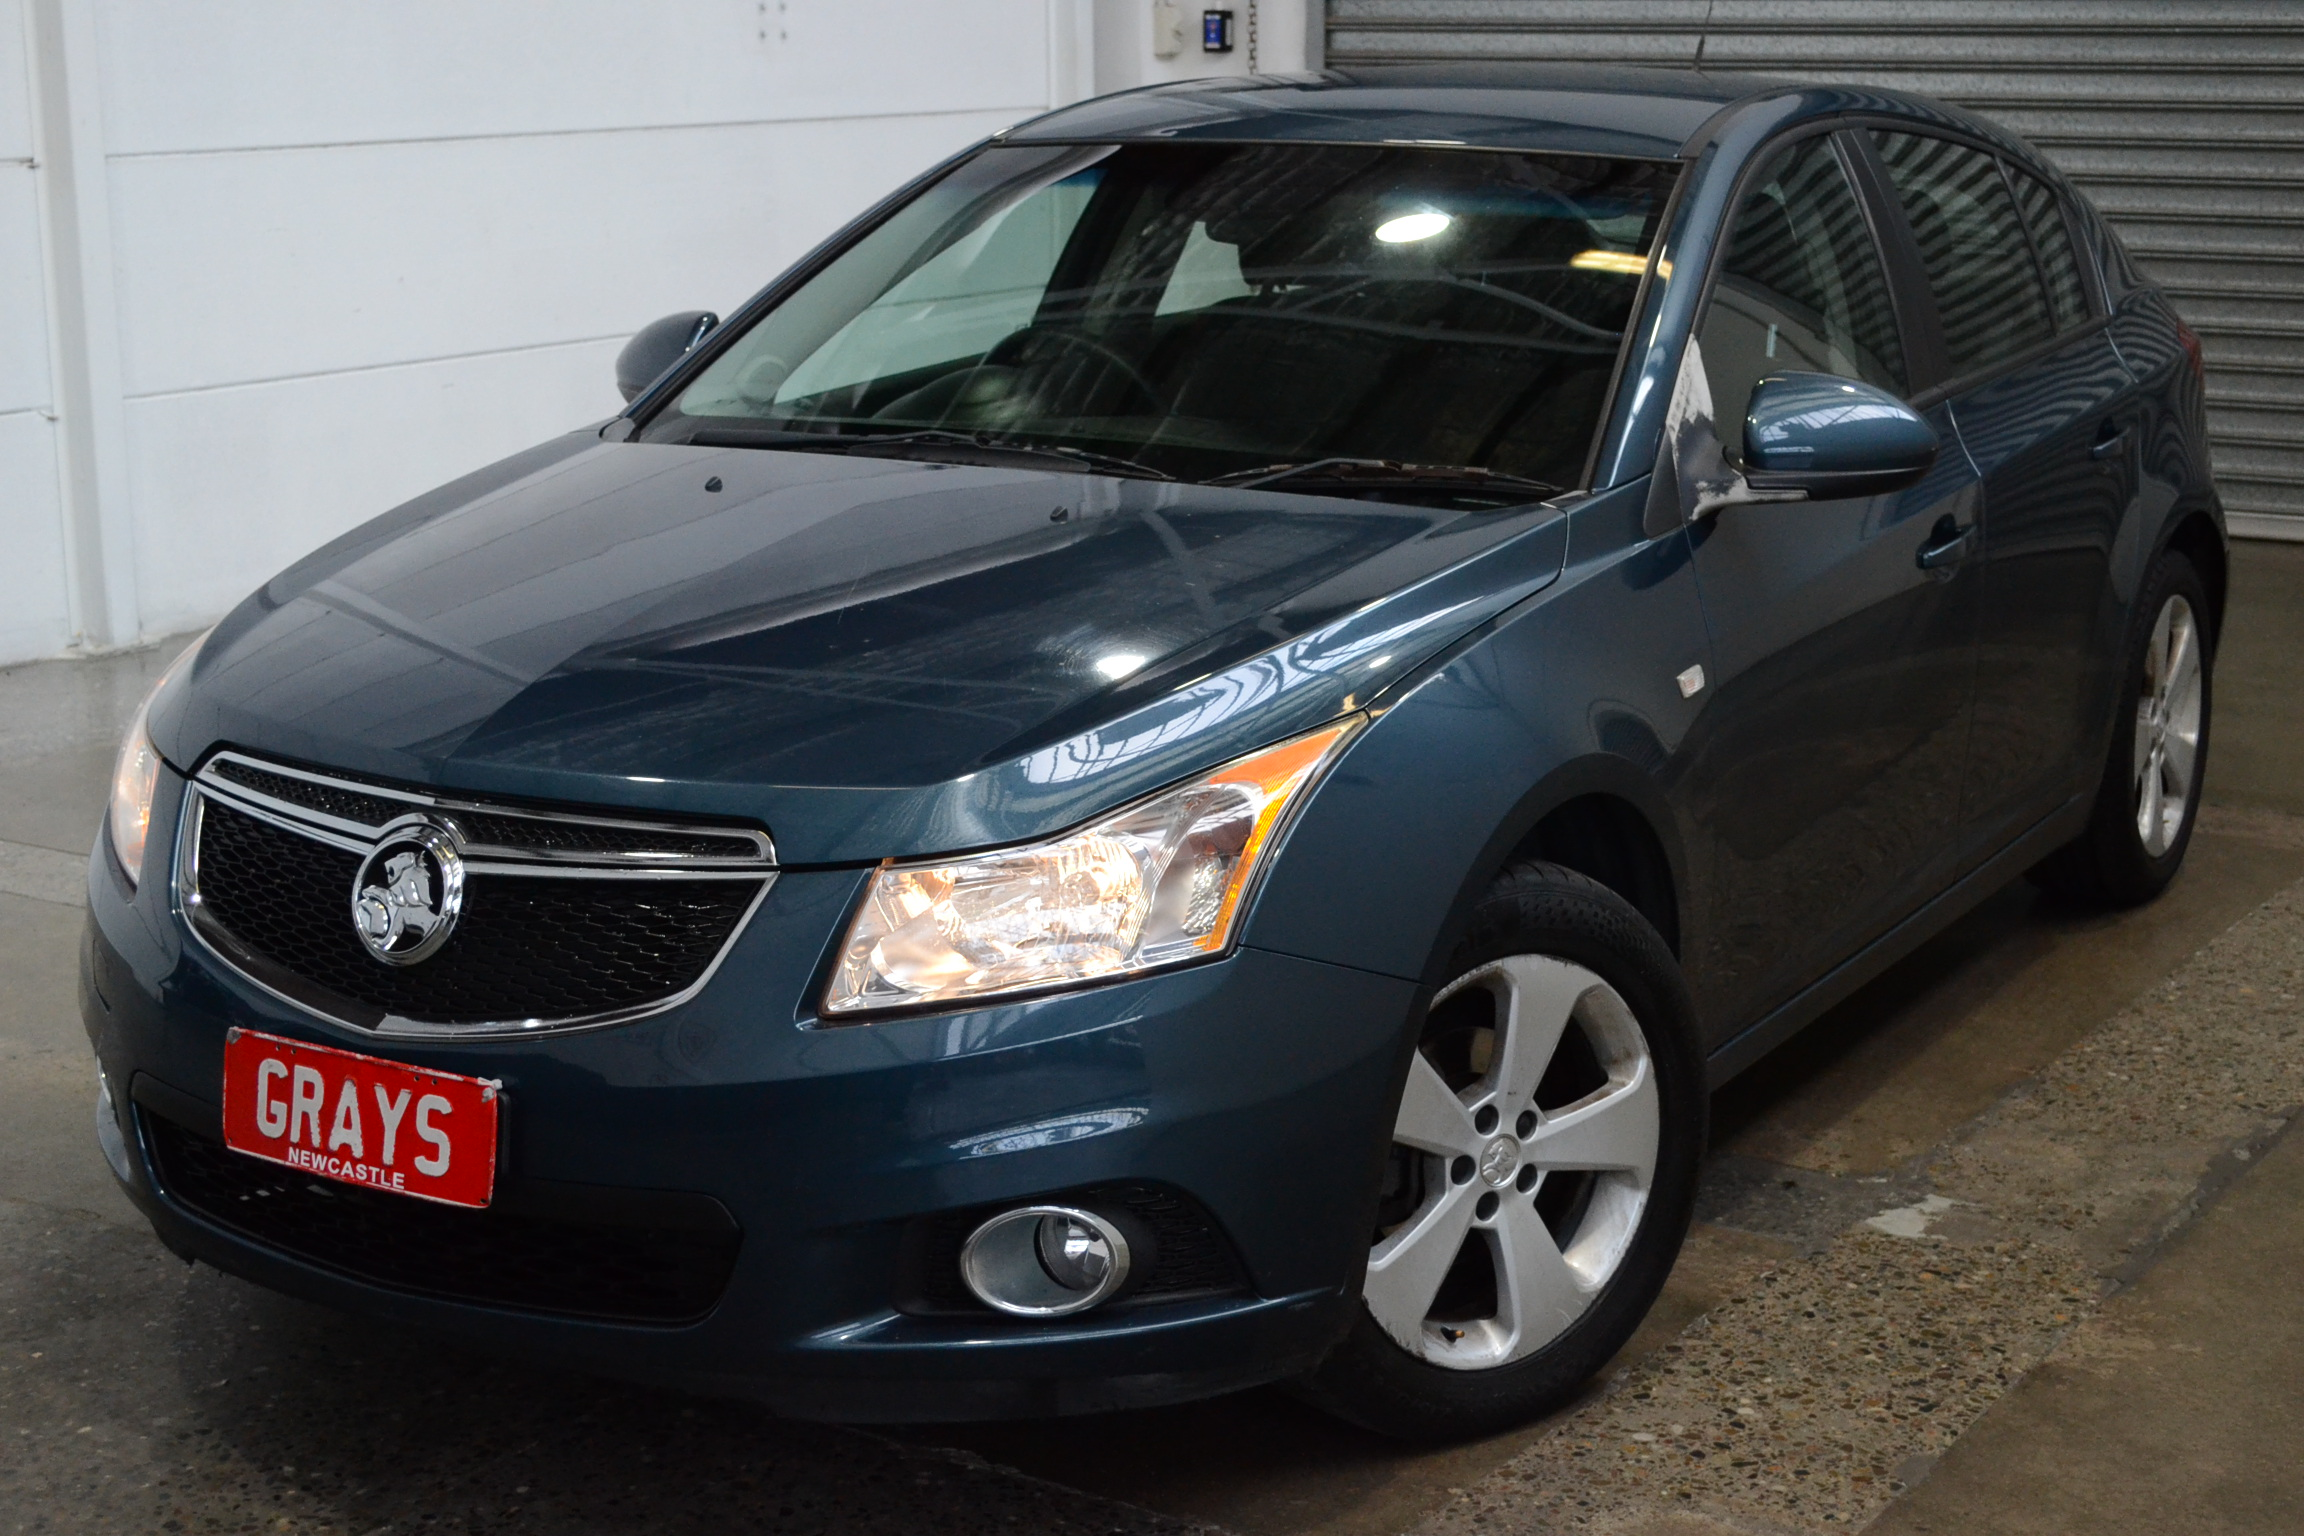 2013 Holden Cruze CD JH Automatic Hatchback